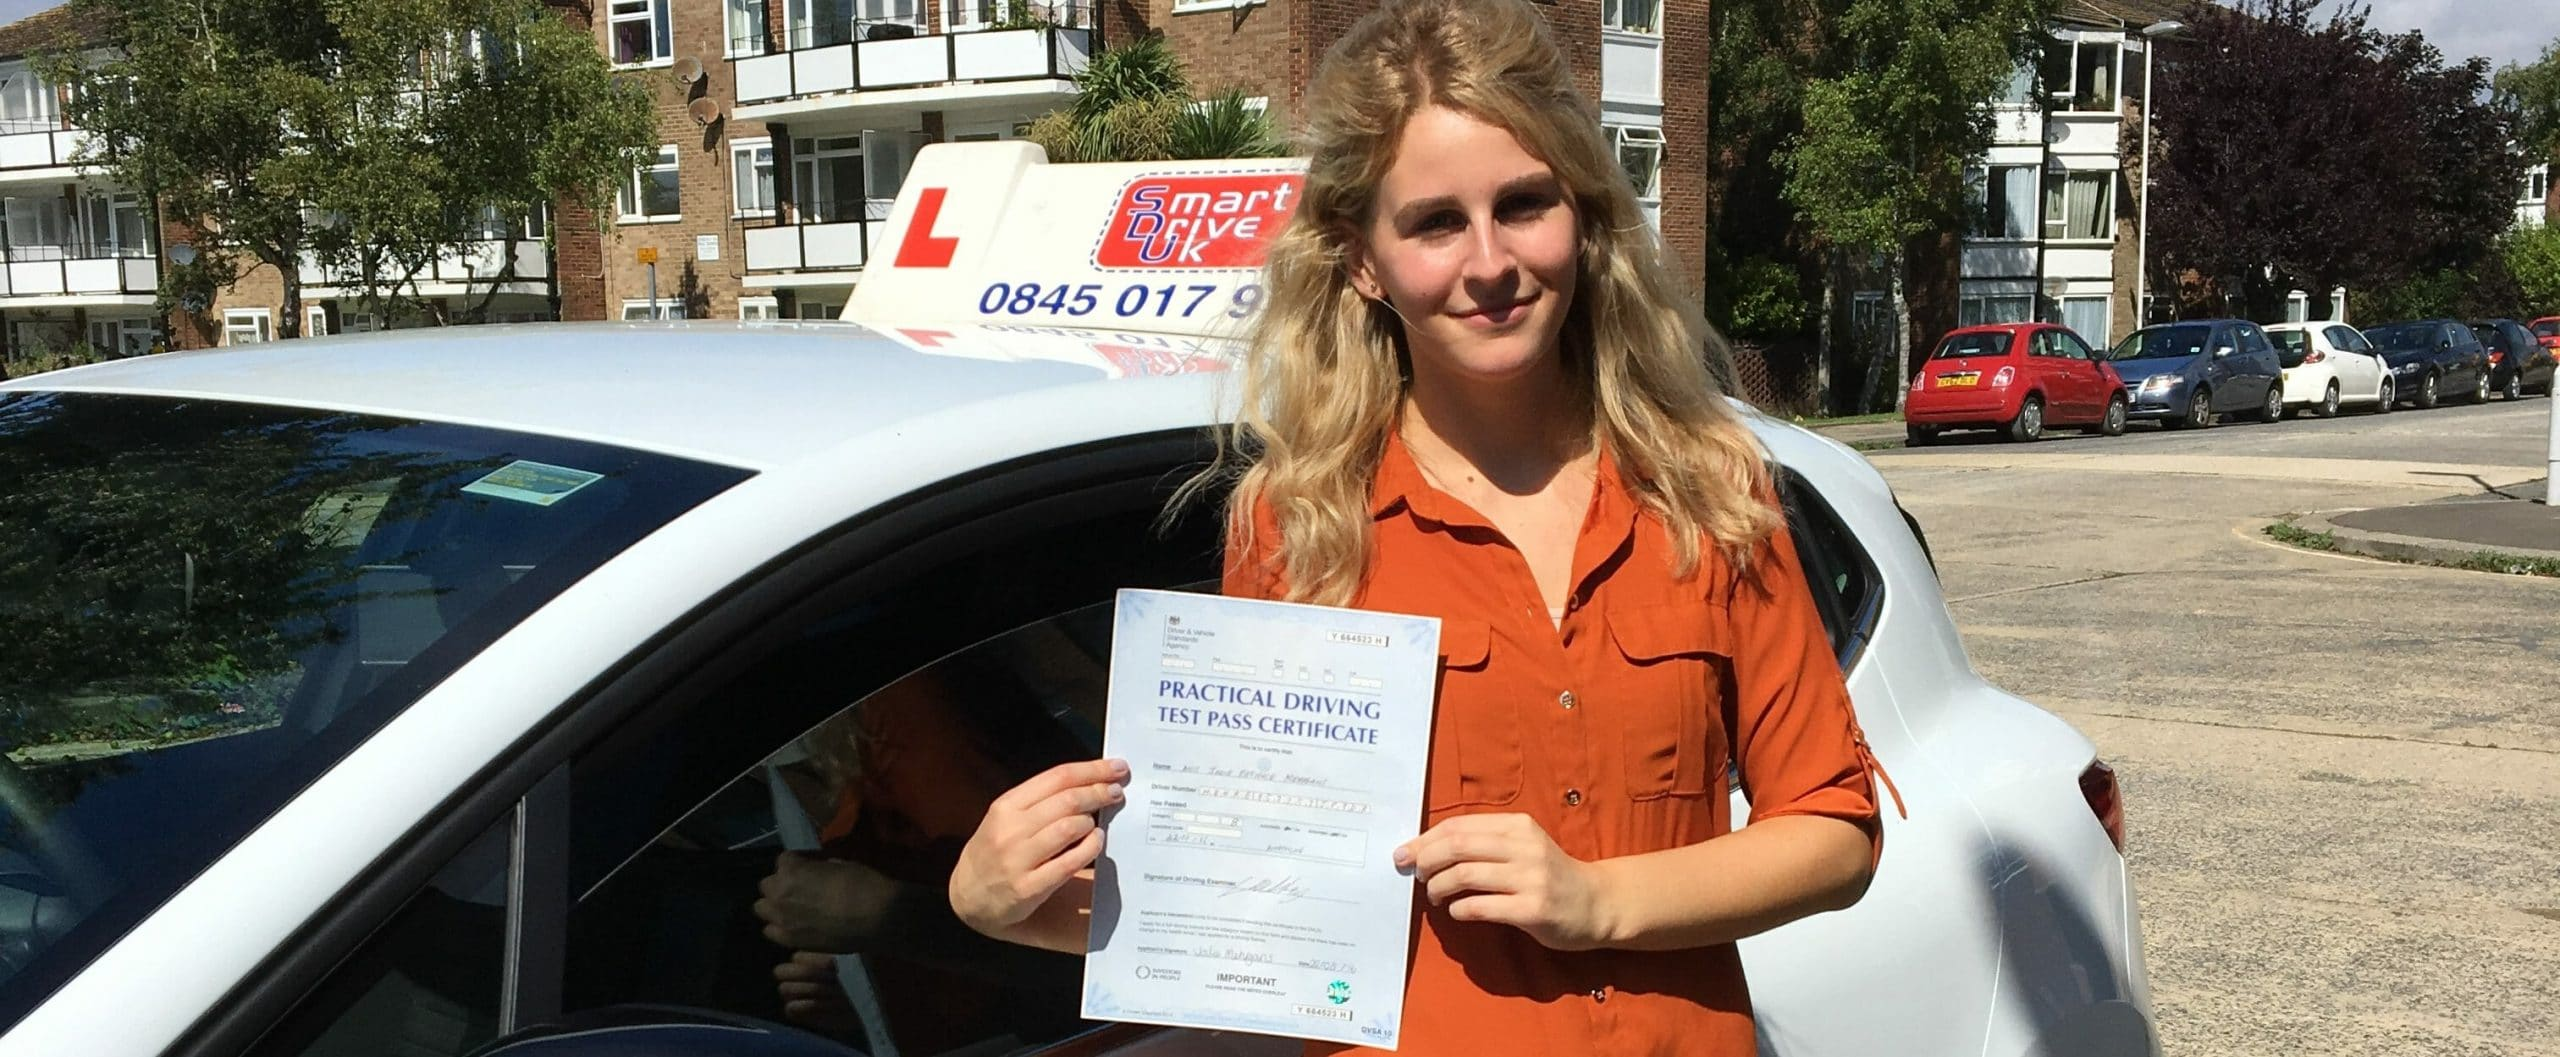 Congratulations to Jodie who passed her driving test in Worthing